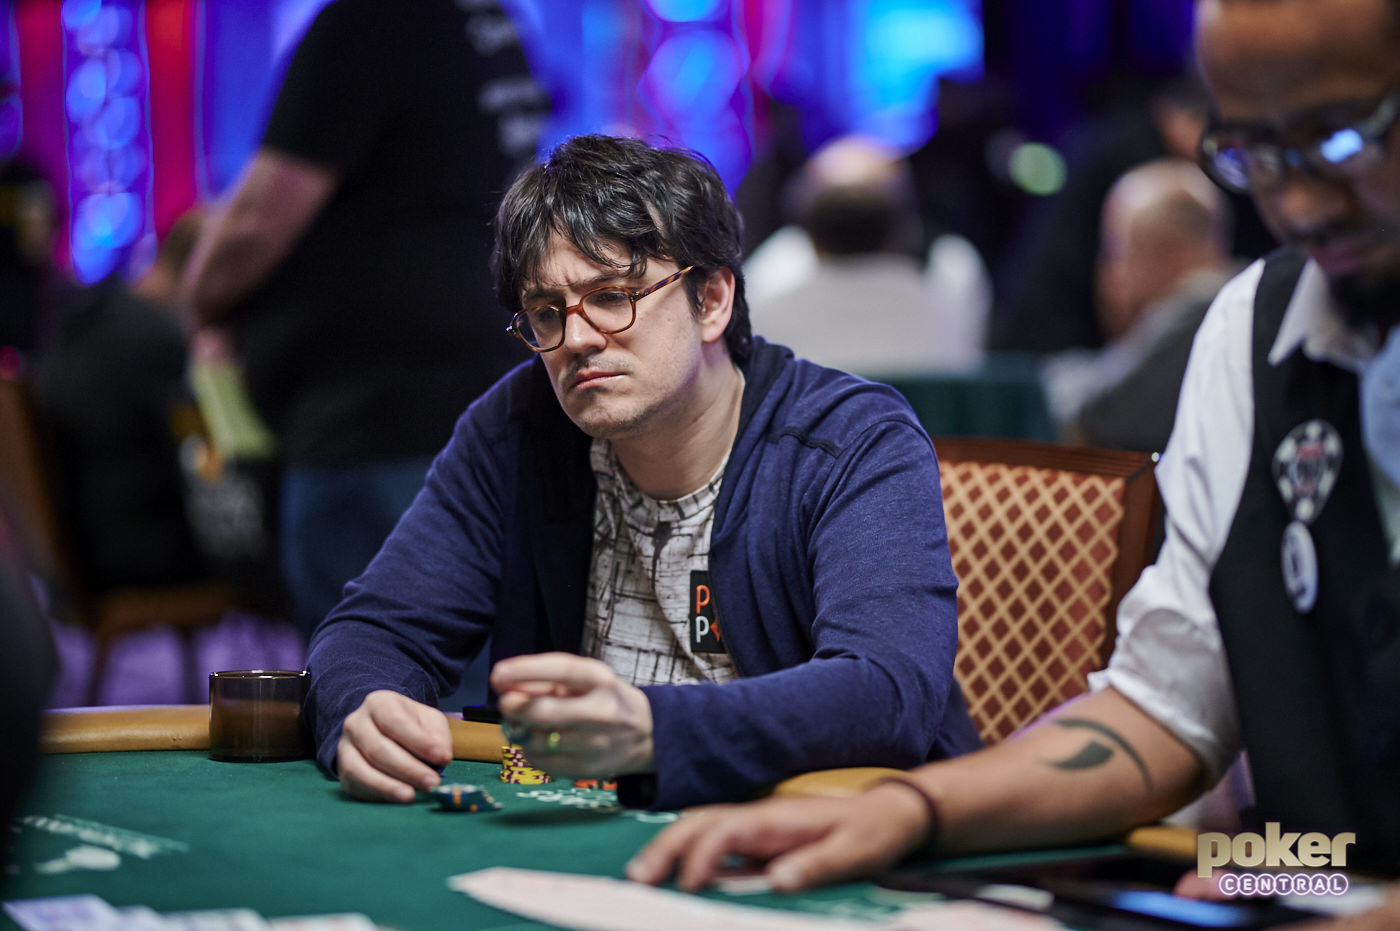 Isaac Haxton during the 2019 World Series of Poker.